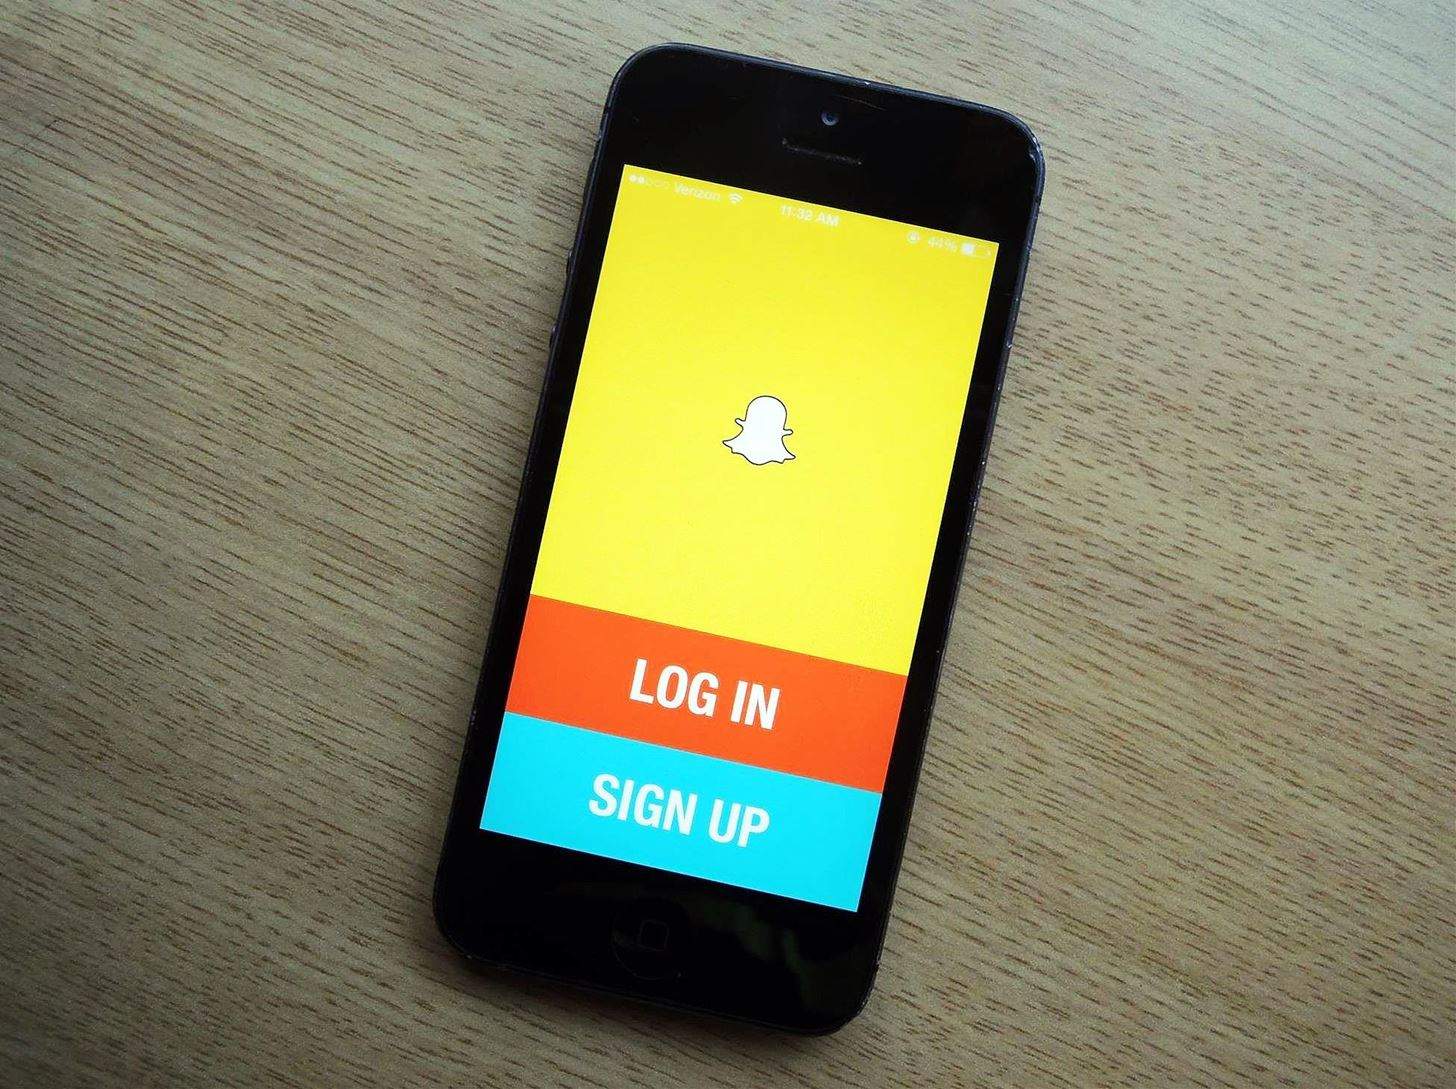 Over 4 Million Snapchat Accounts Have Been Compromised—Is Yours One of Them?